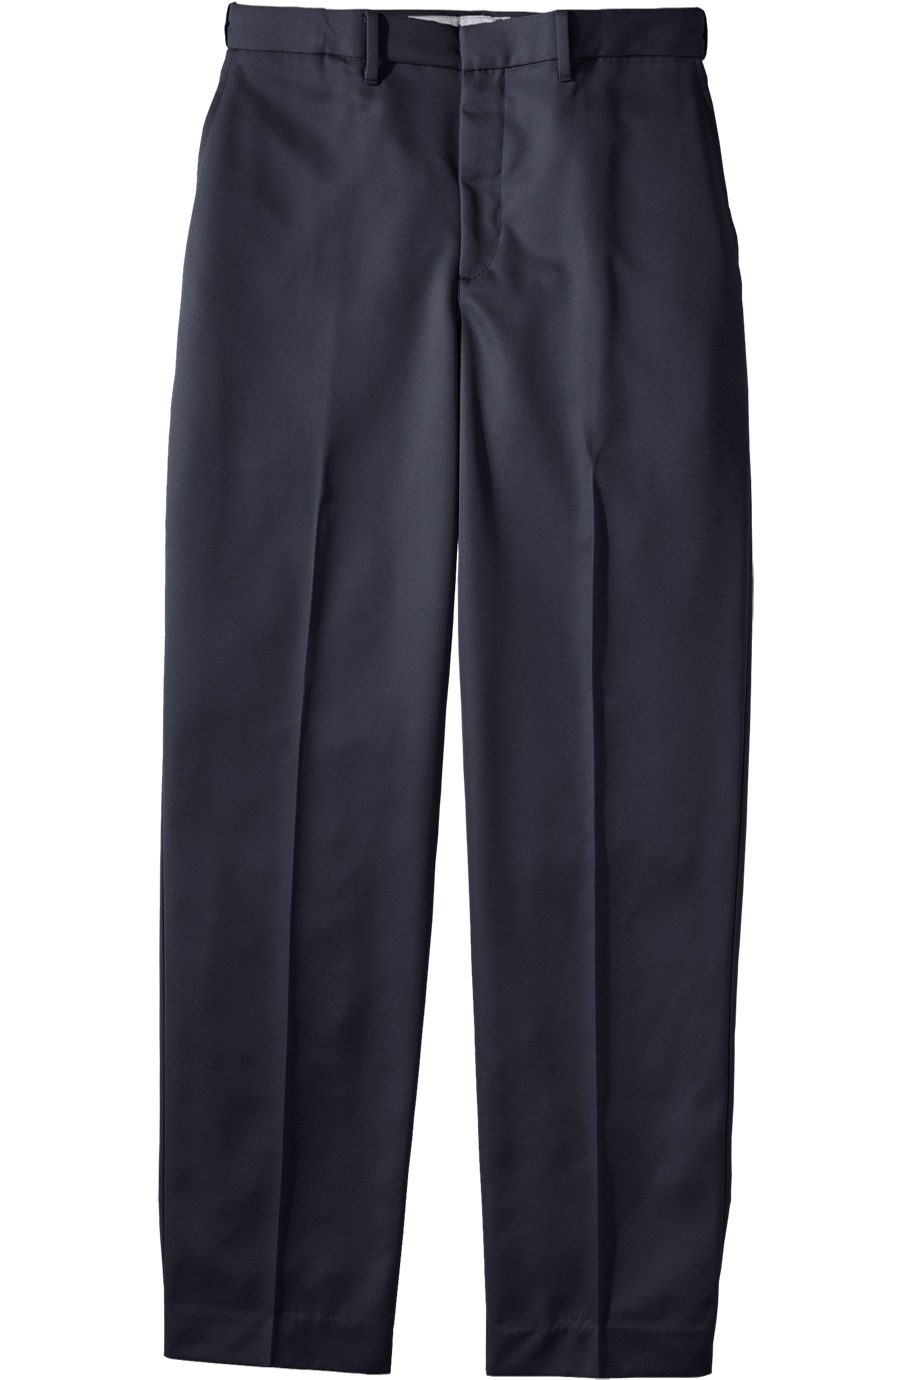 Edwards Flat Front EZ Fit Chino Pant